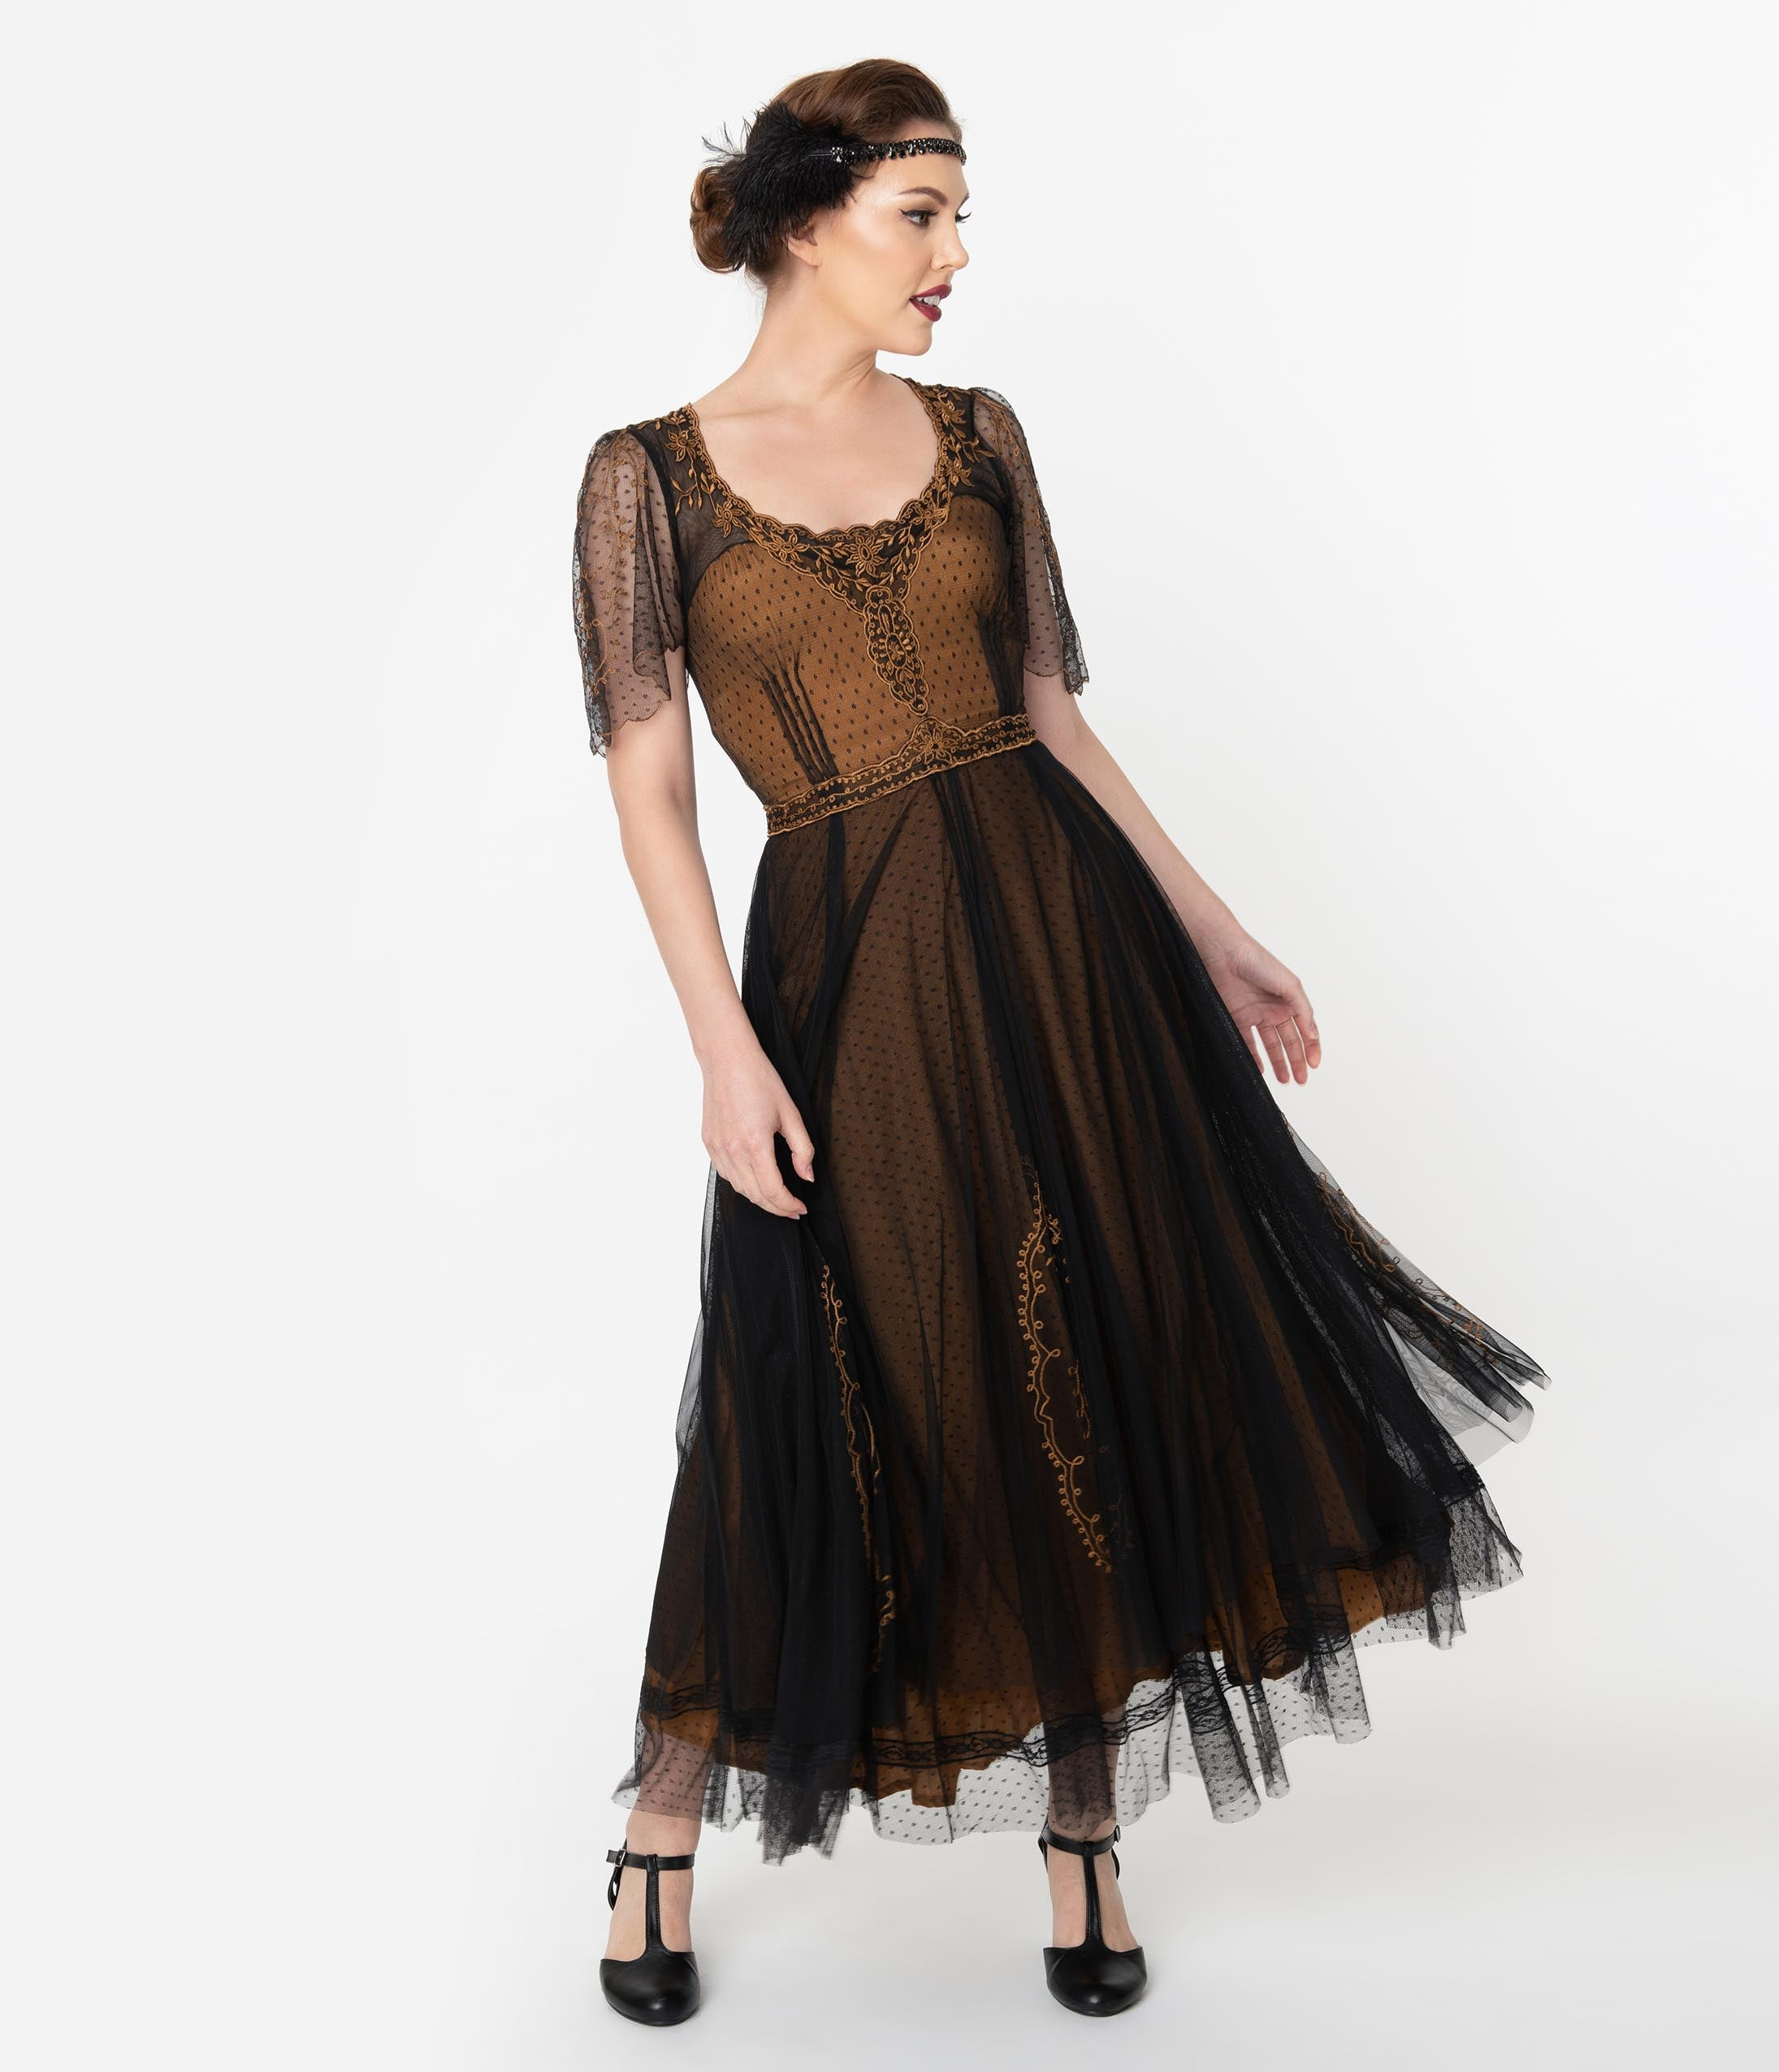 Swing Dance Clothing You Can Dance In Vintage Style Black  Gold Embroidered Mesh Edwardian Gown $299.00 AT vintagedancer.com